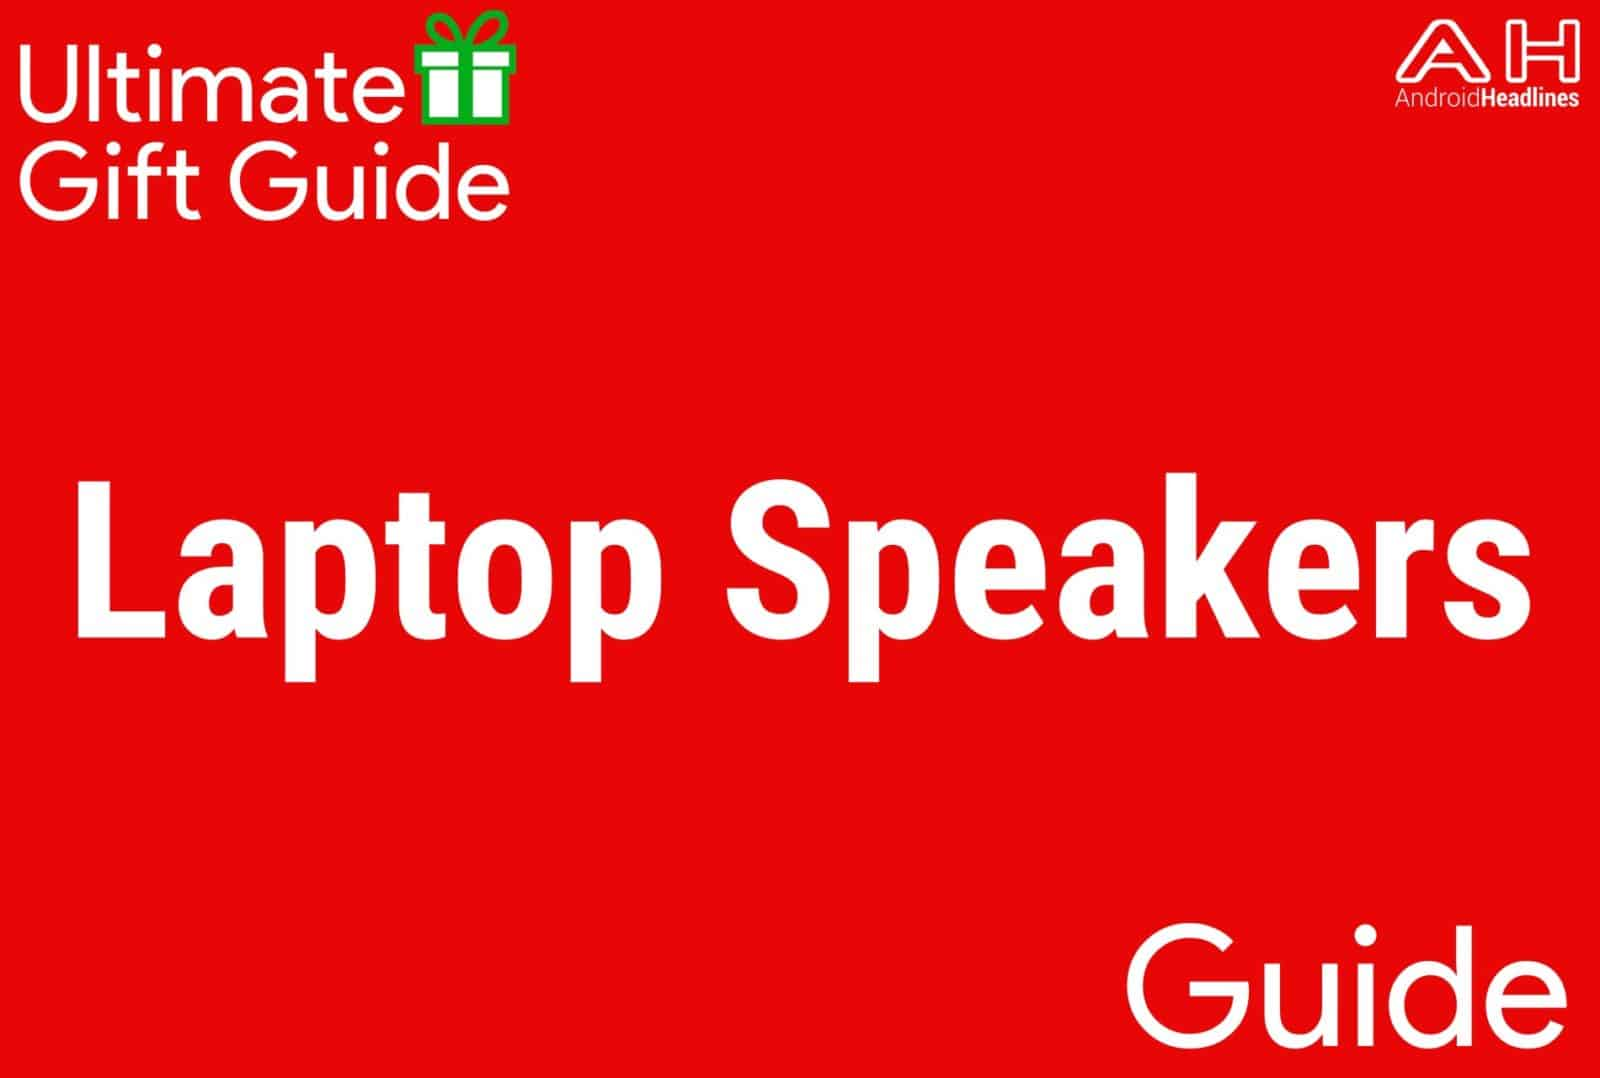 Laptop Speakers - Gift Guide 2015